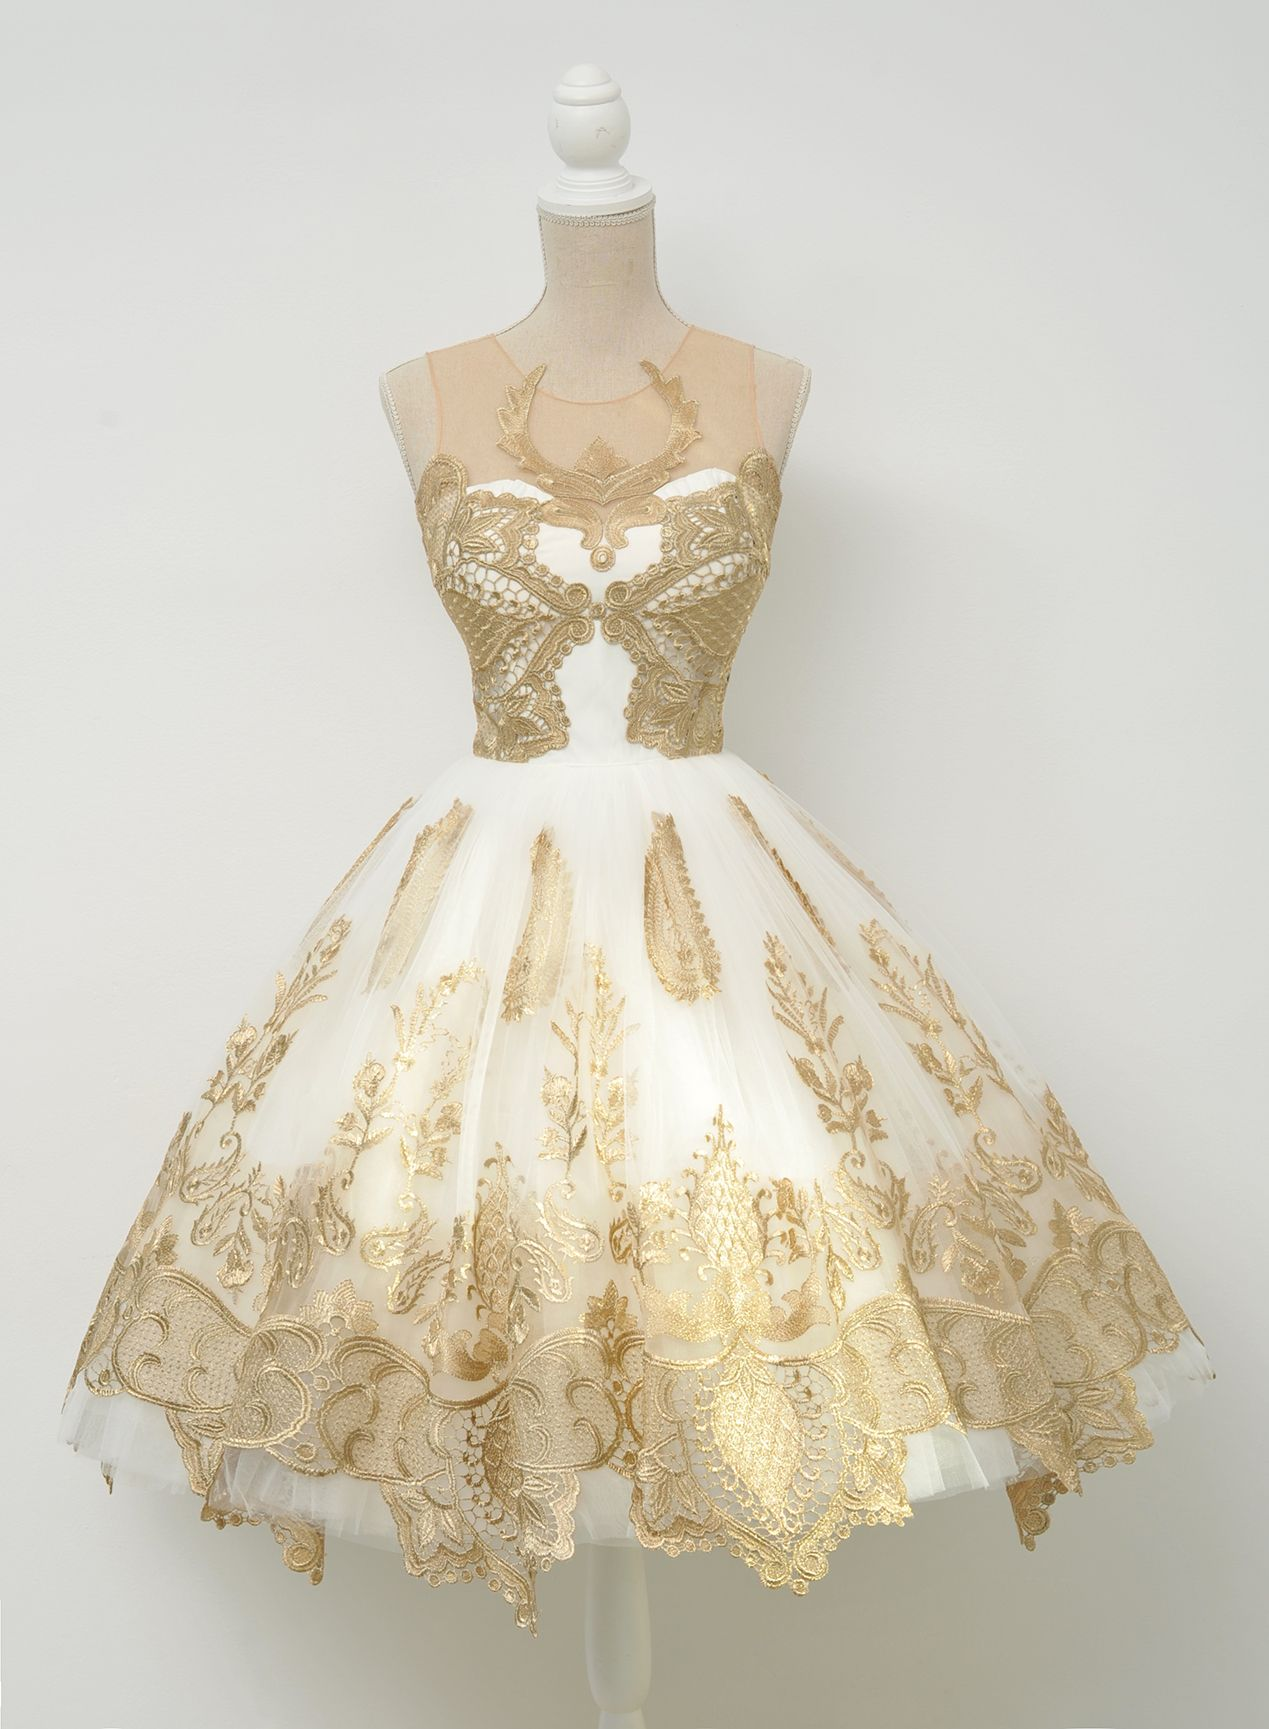 Best dresses to wear to a wedding reception  Naughty Gal Shoes  Vintage Dresses  Dresses  Pinterest  Ramones